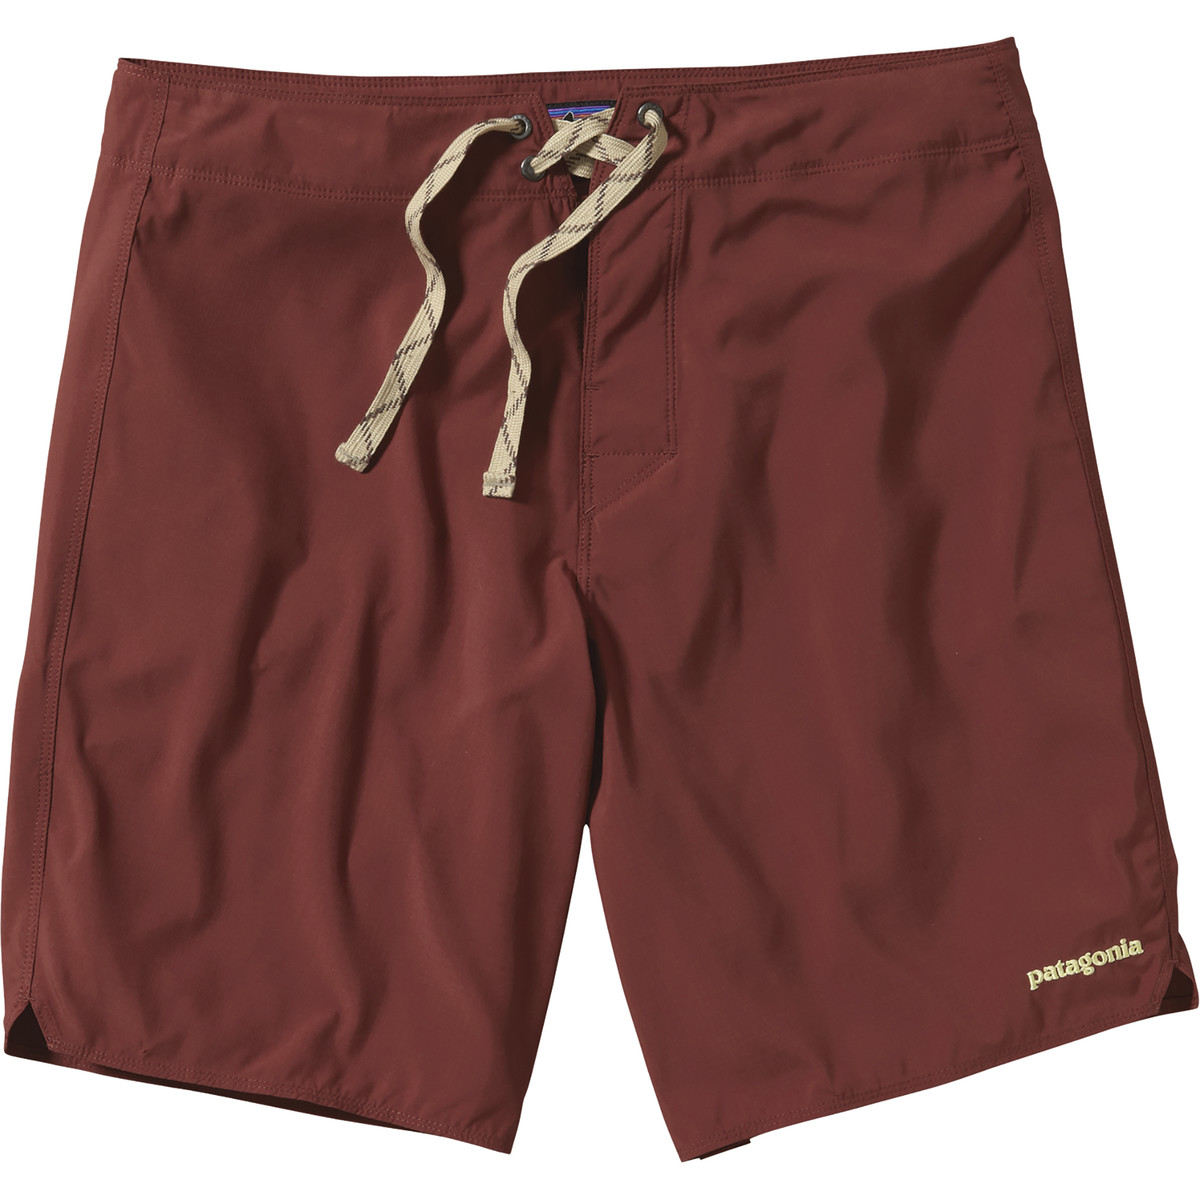 Patagonia Light and Variable Surf Trunks